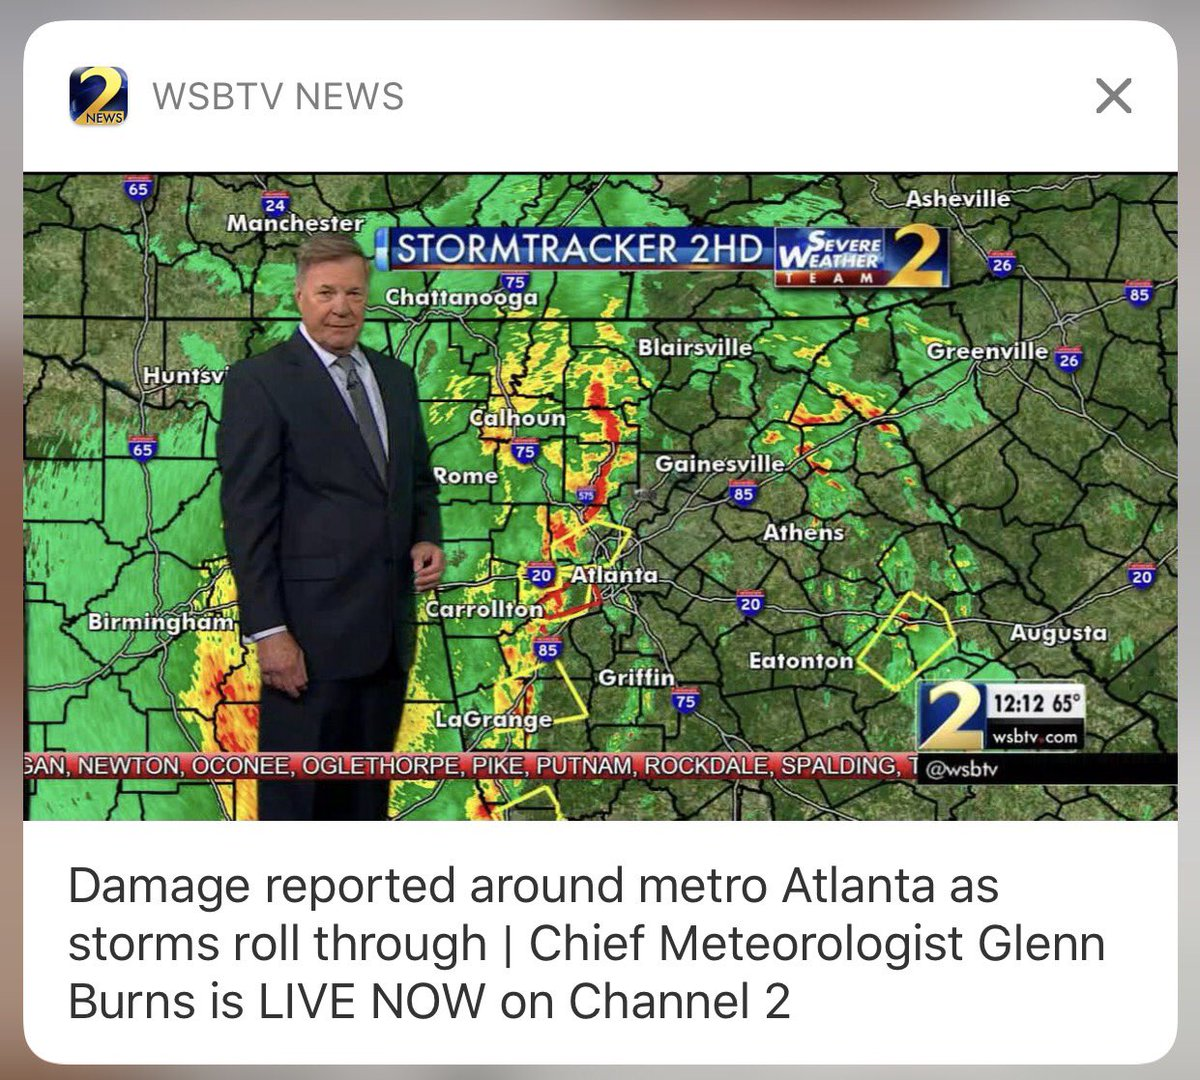 Download the wsb-tv news app to get breaking news & severe weather